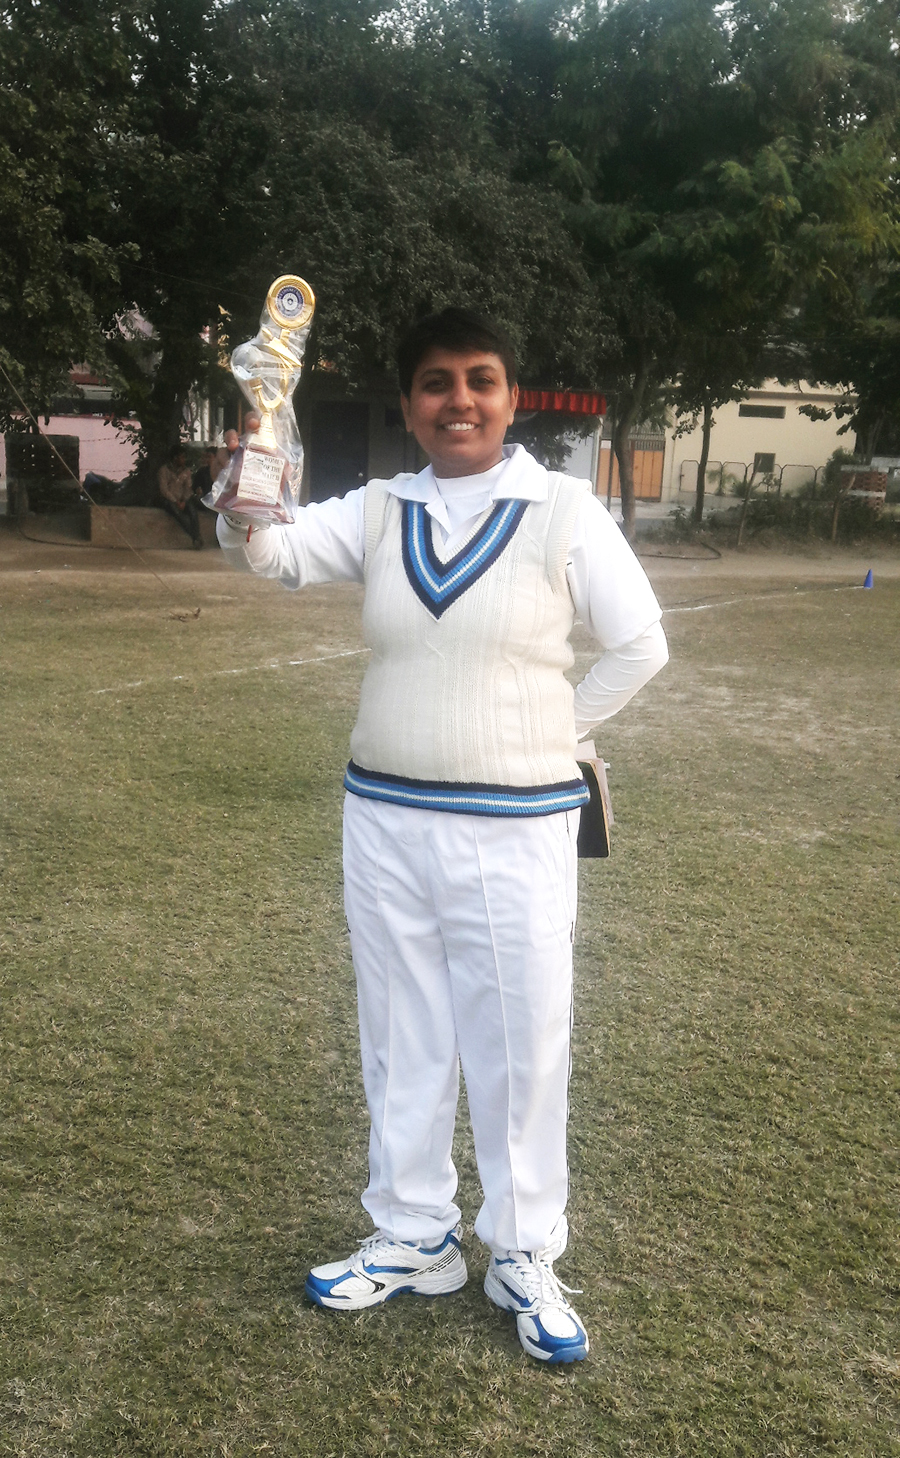 Darshini Rami decided to return to WCAI after feeling dissatisfied with the BCCI's efforts to grow the game